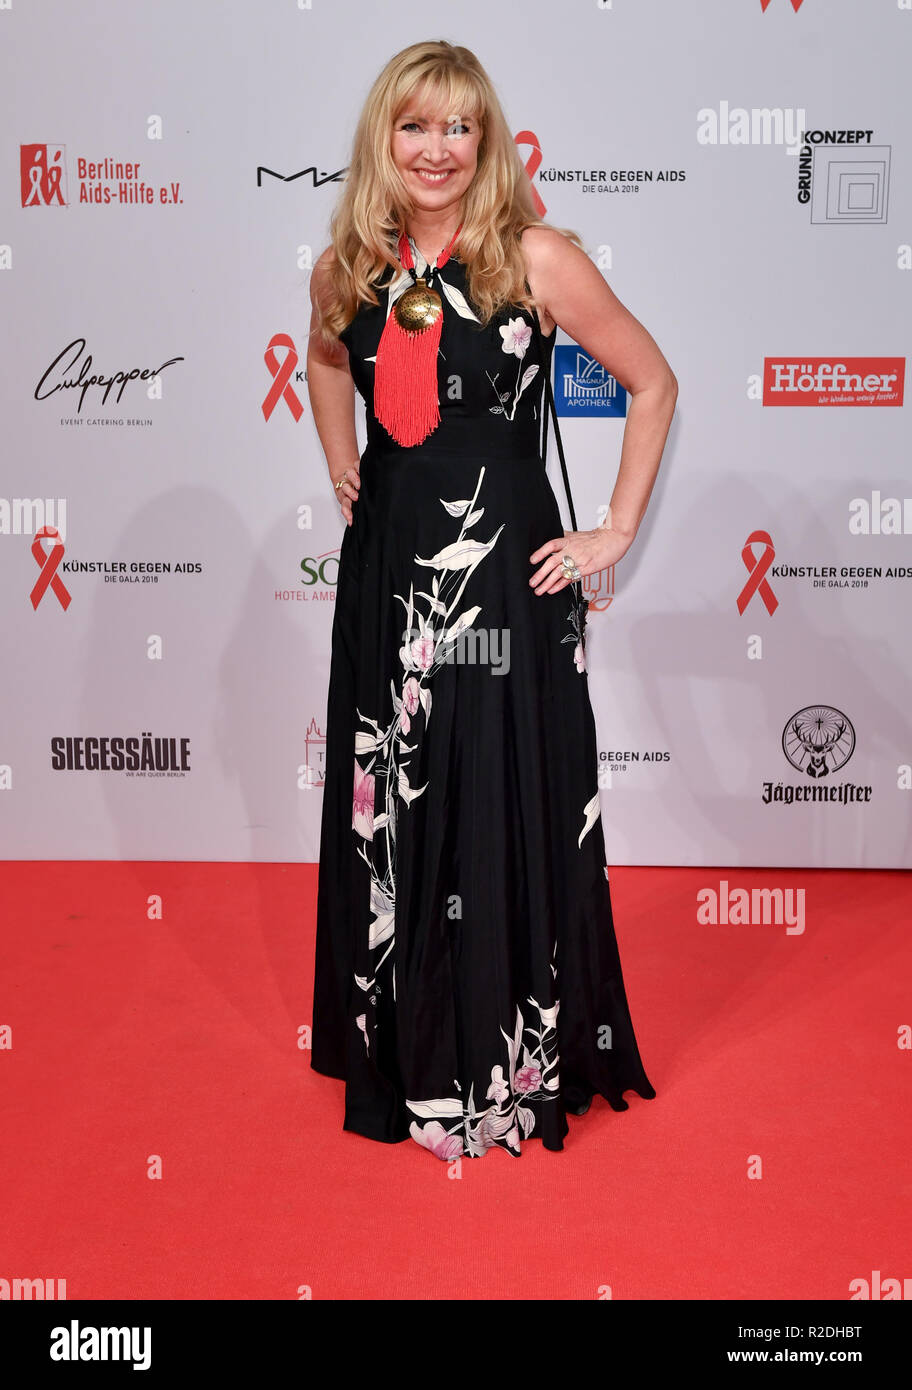 Berlin, Germany. 19th Nov, 2018. Nanna Kuckuck, German designer, comes to the benefit gala 'Artists against Aids - The Gala 2018' in the Theater des Westens for the benefit of the aid offers of the Berliner Aids-Hilfe. Credit: Jens Kalaene/dpa-Zentralbild/dpa/Alamy Live News - Stock Image